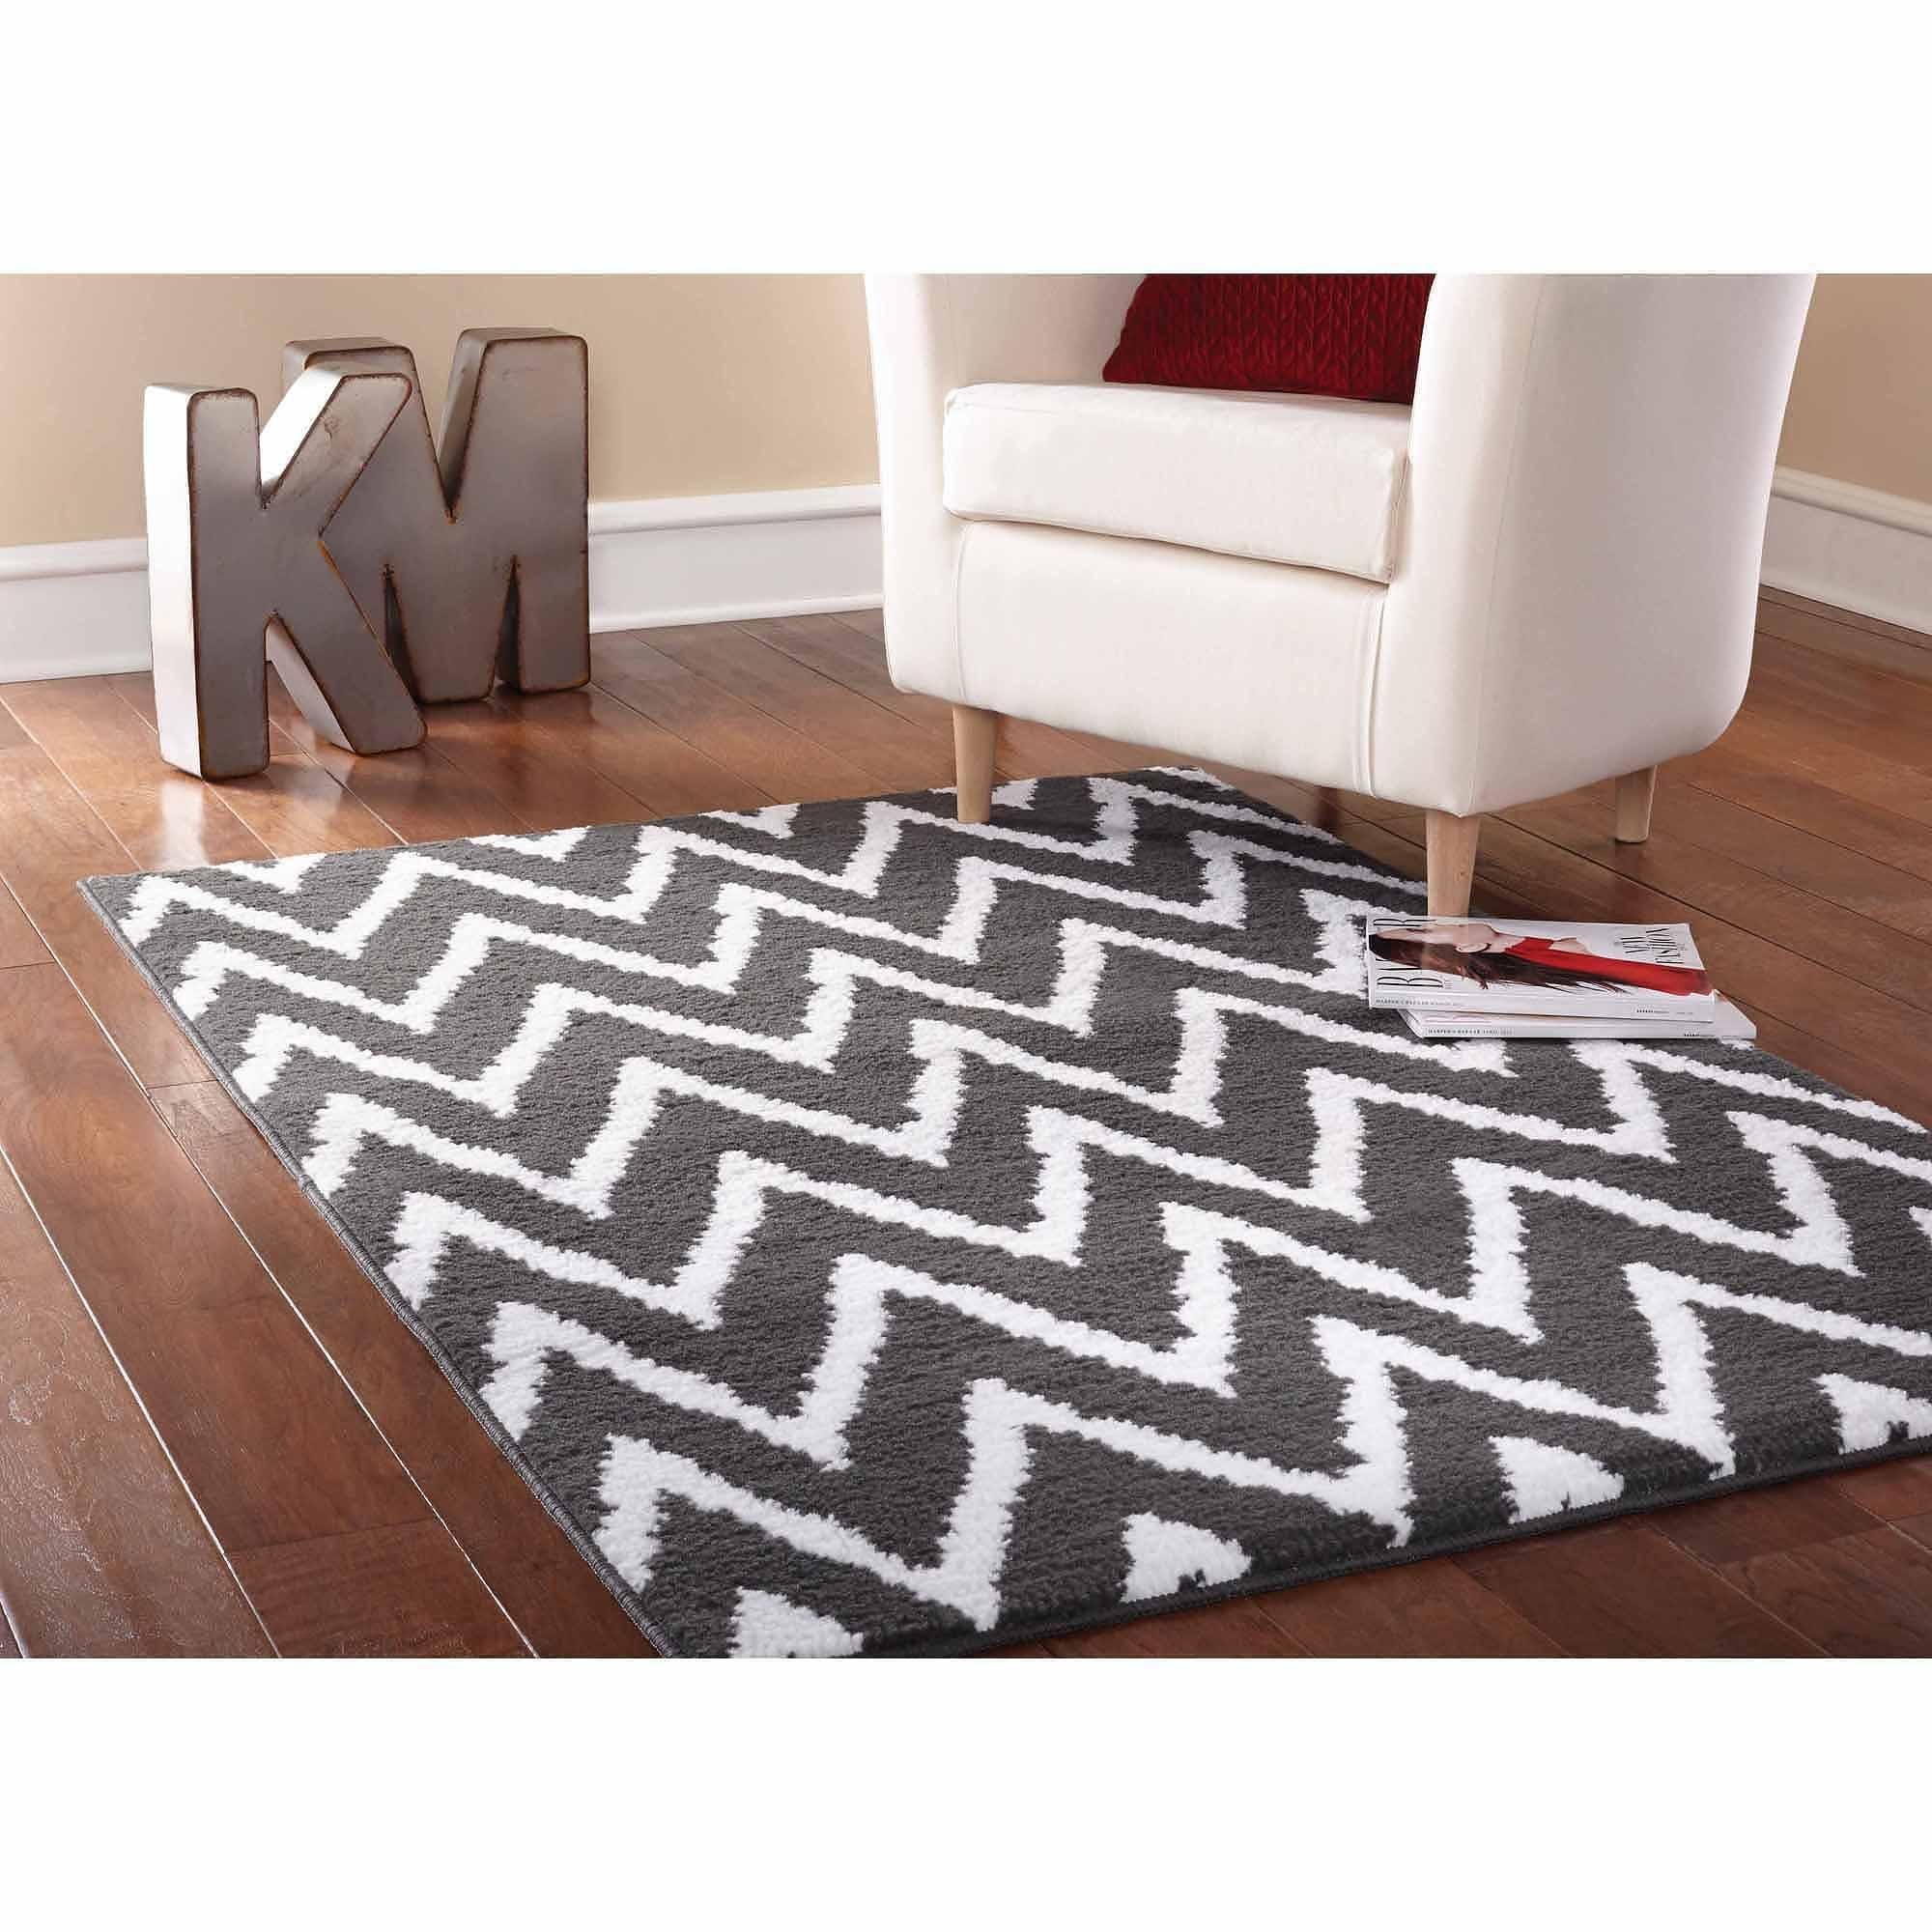 Best Rug Beautiful Walmart Rugs 8X10 For Your Flooring With Pictures